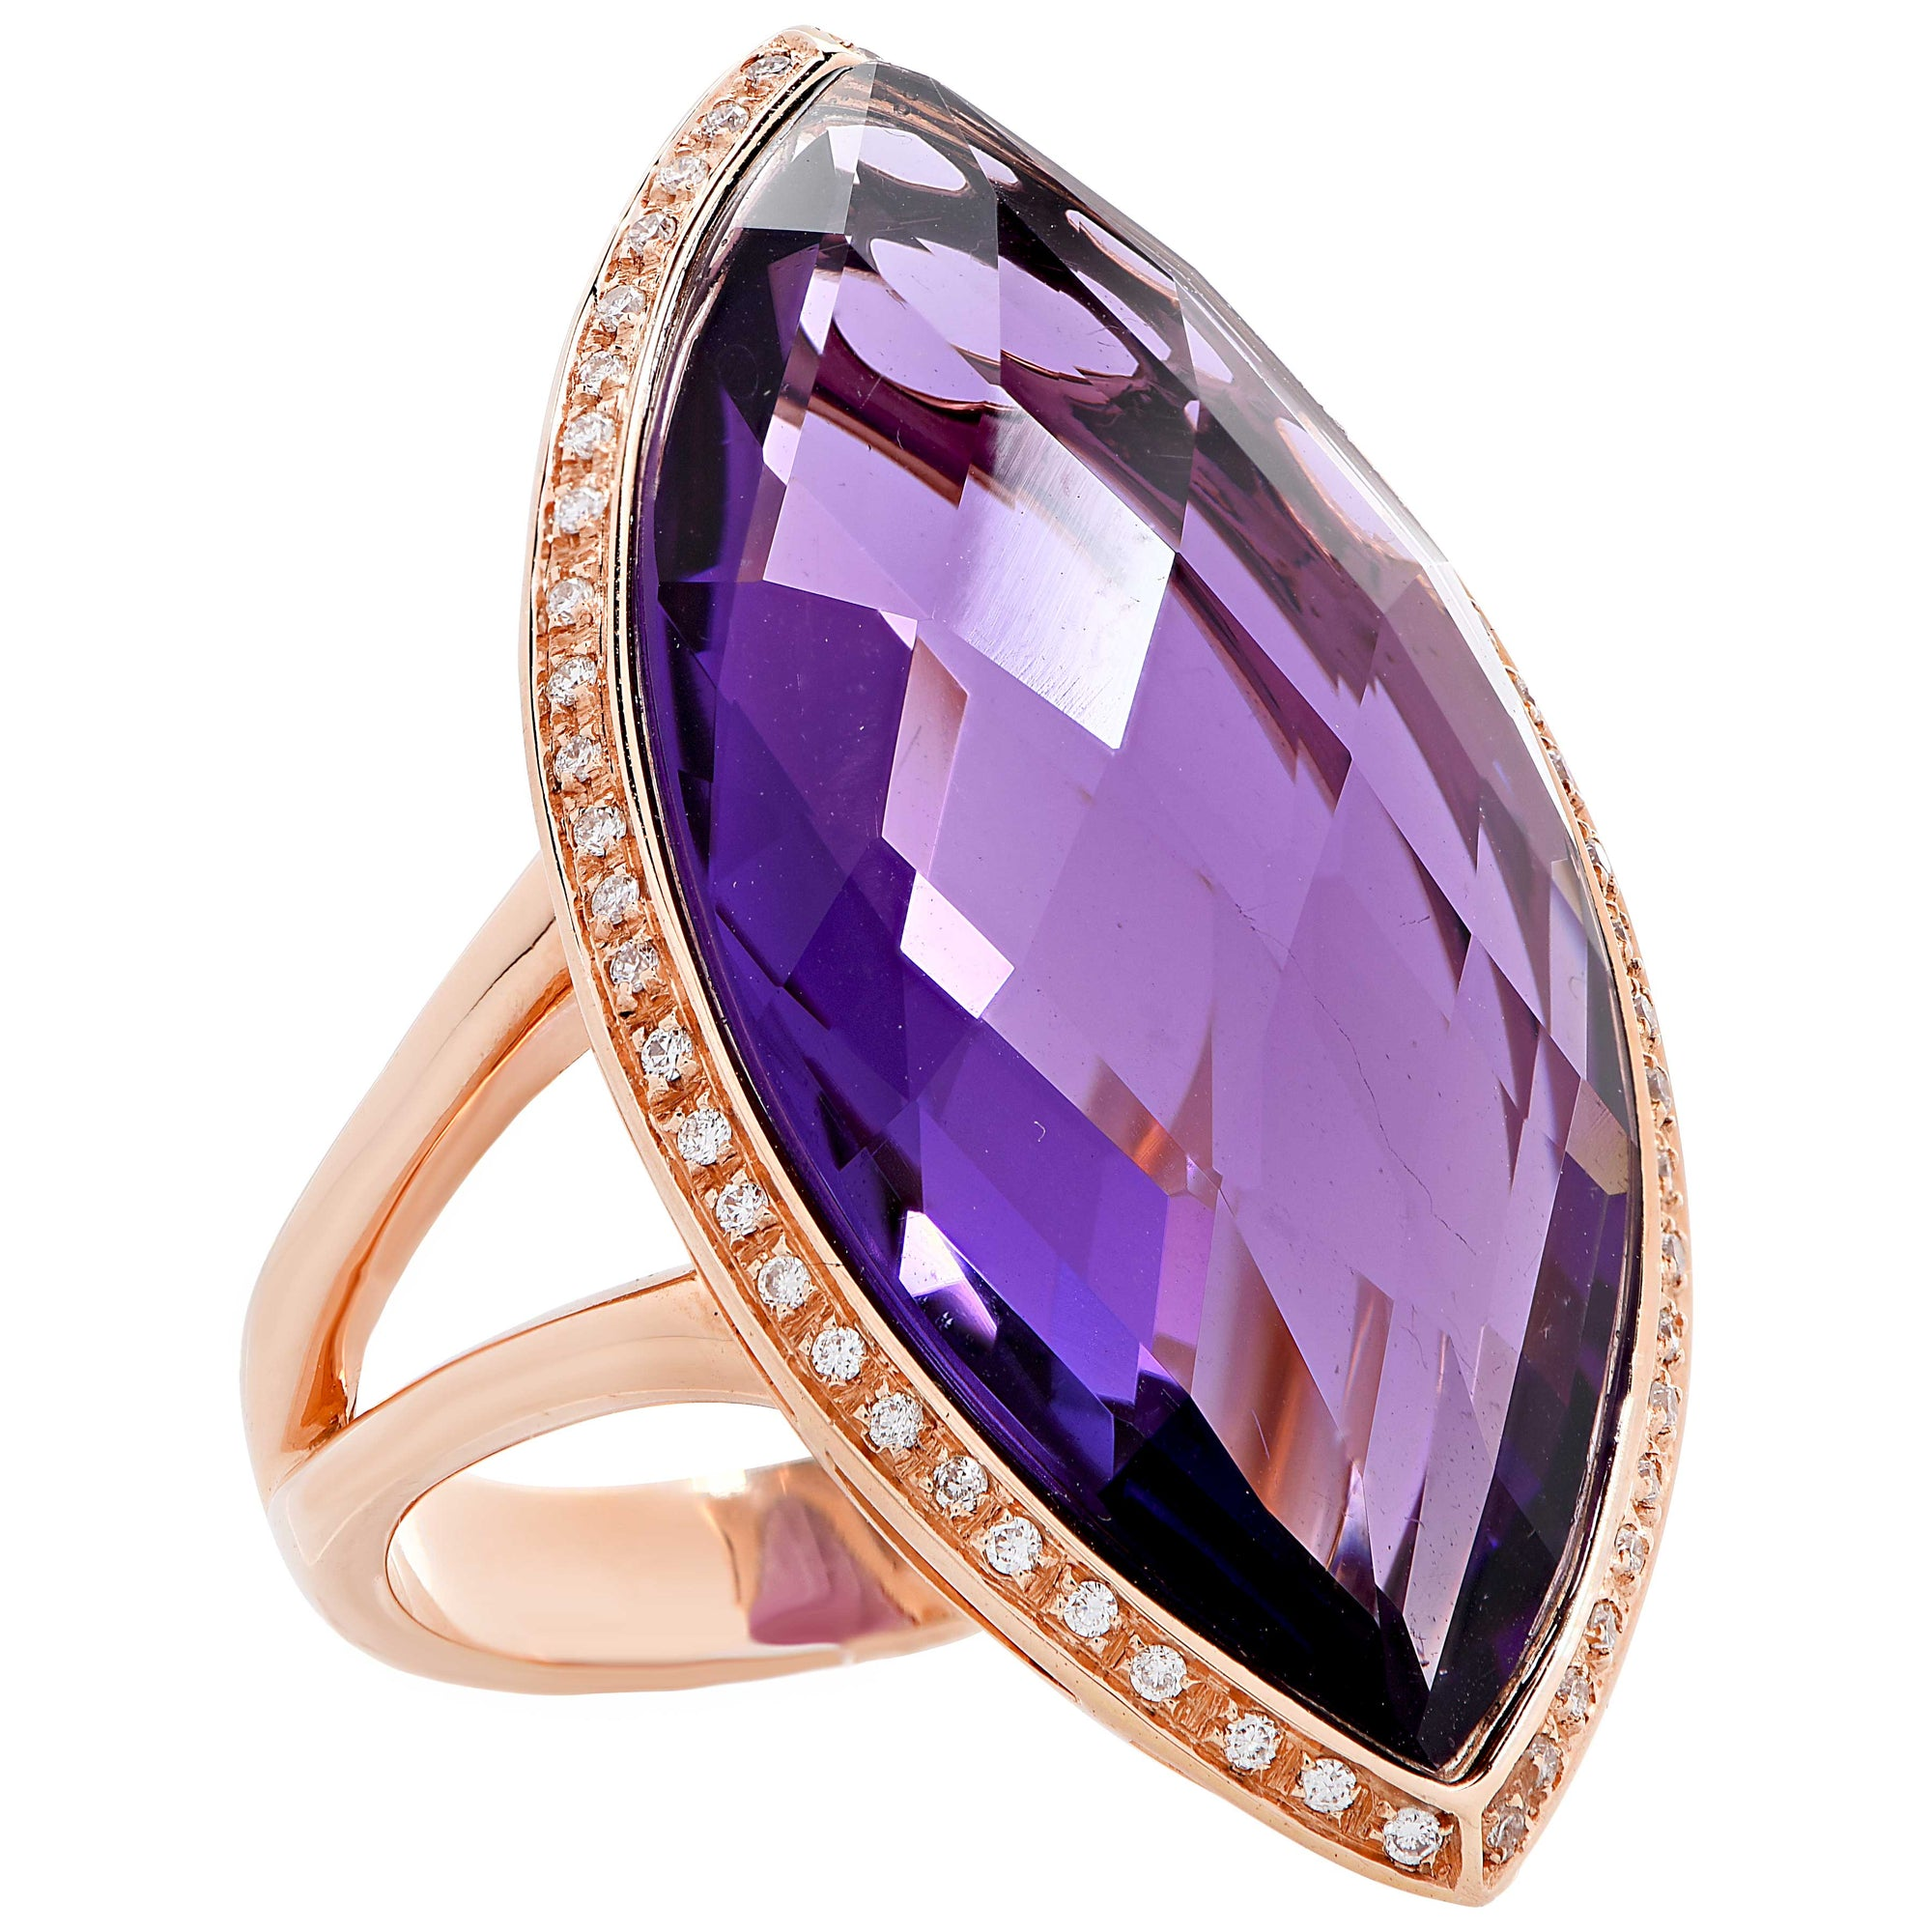 23 Carat Natural Amethyst & Diamond 18 Karat Rose Gold Ring